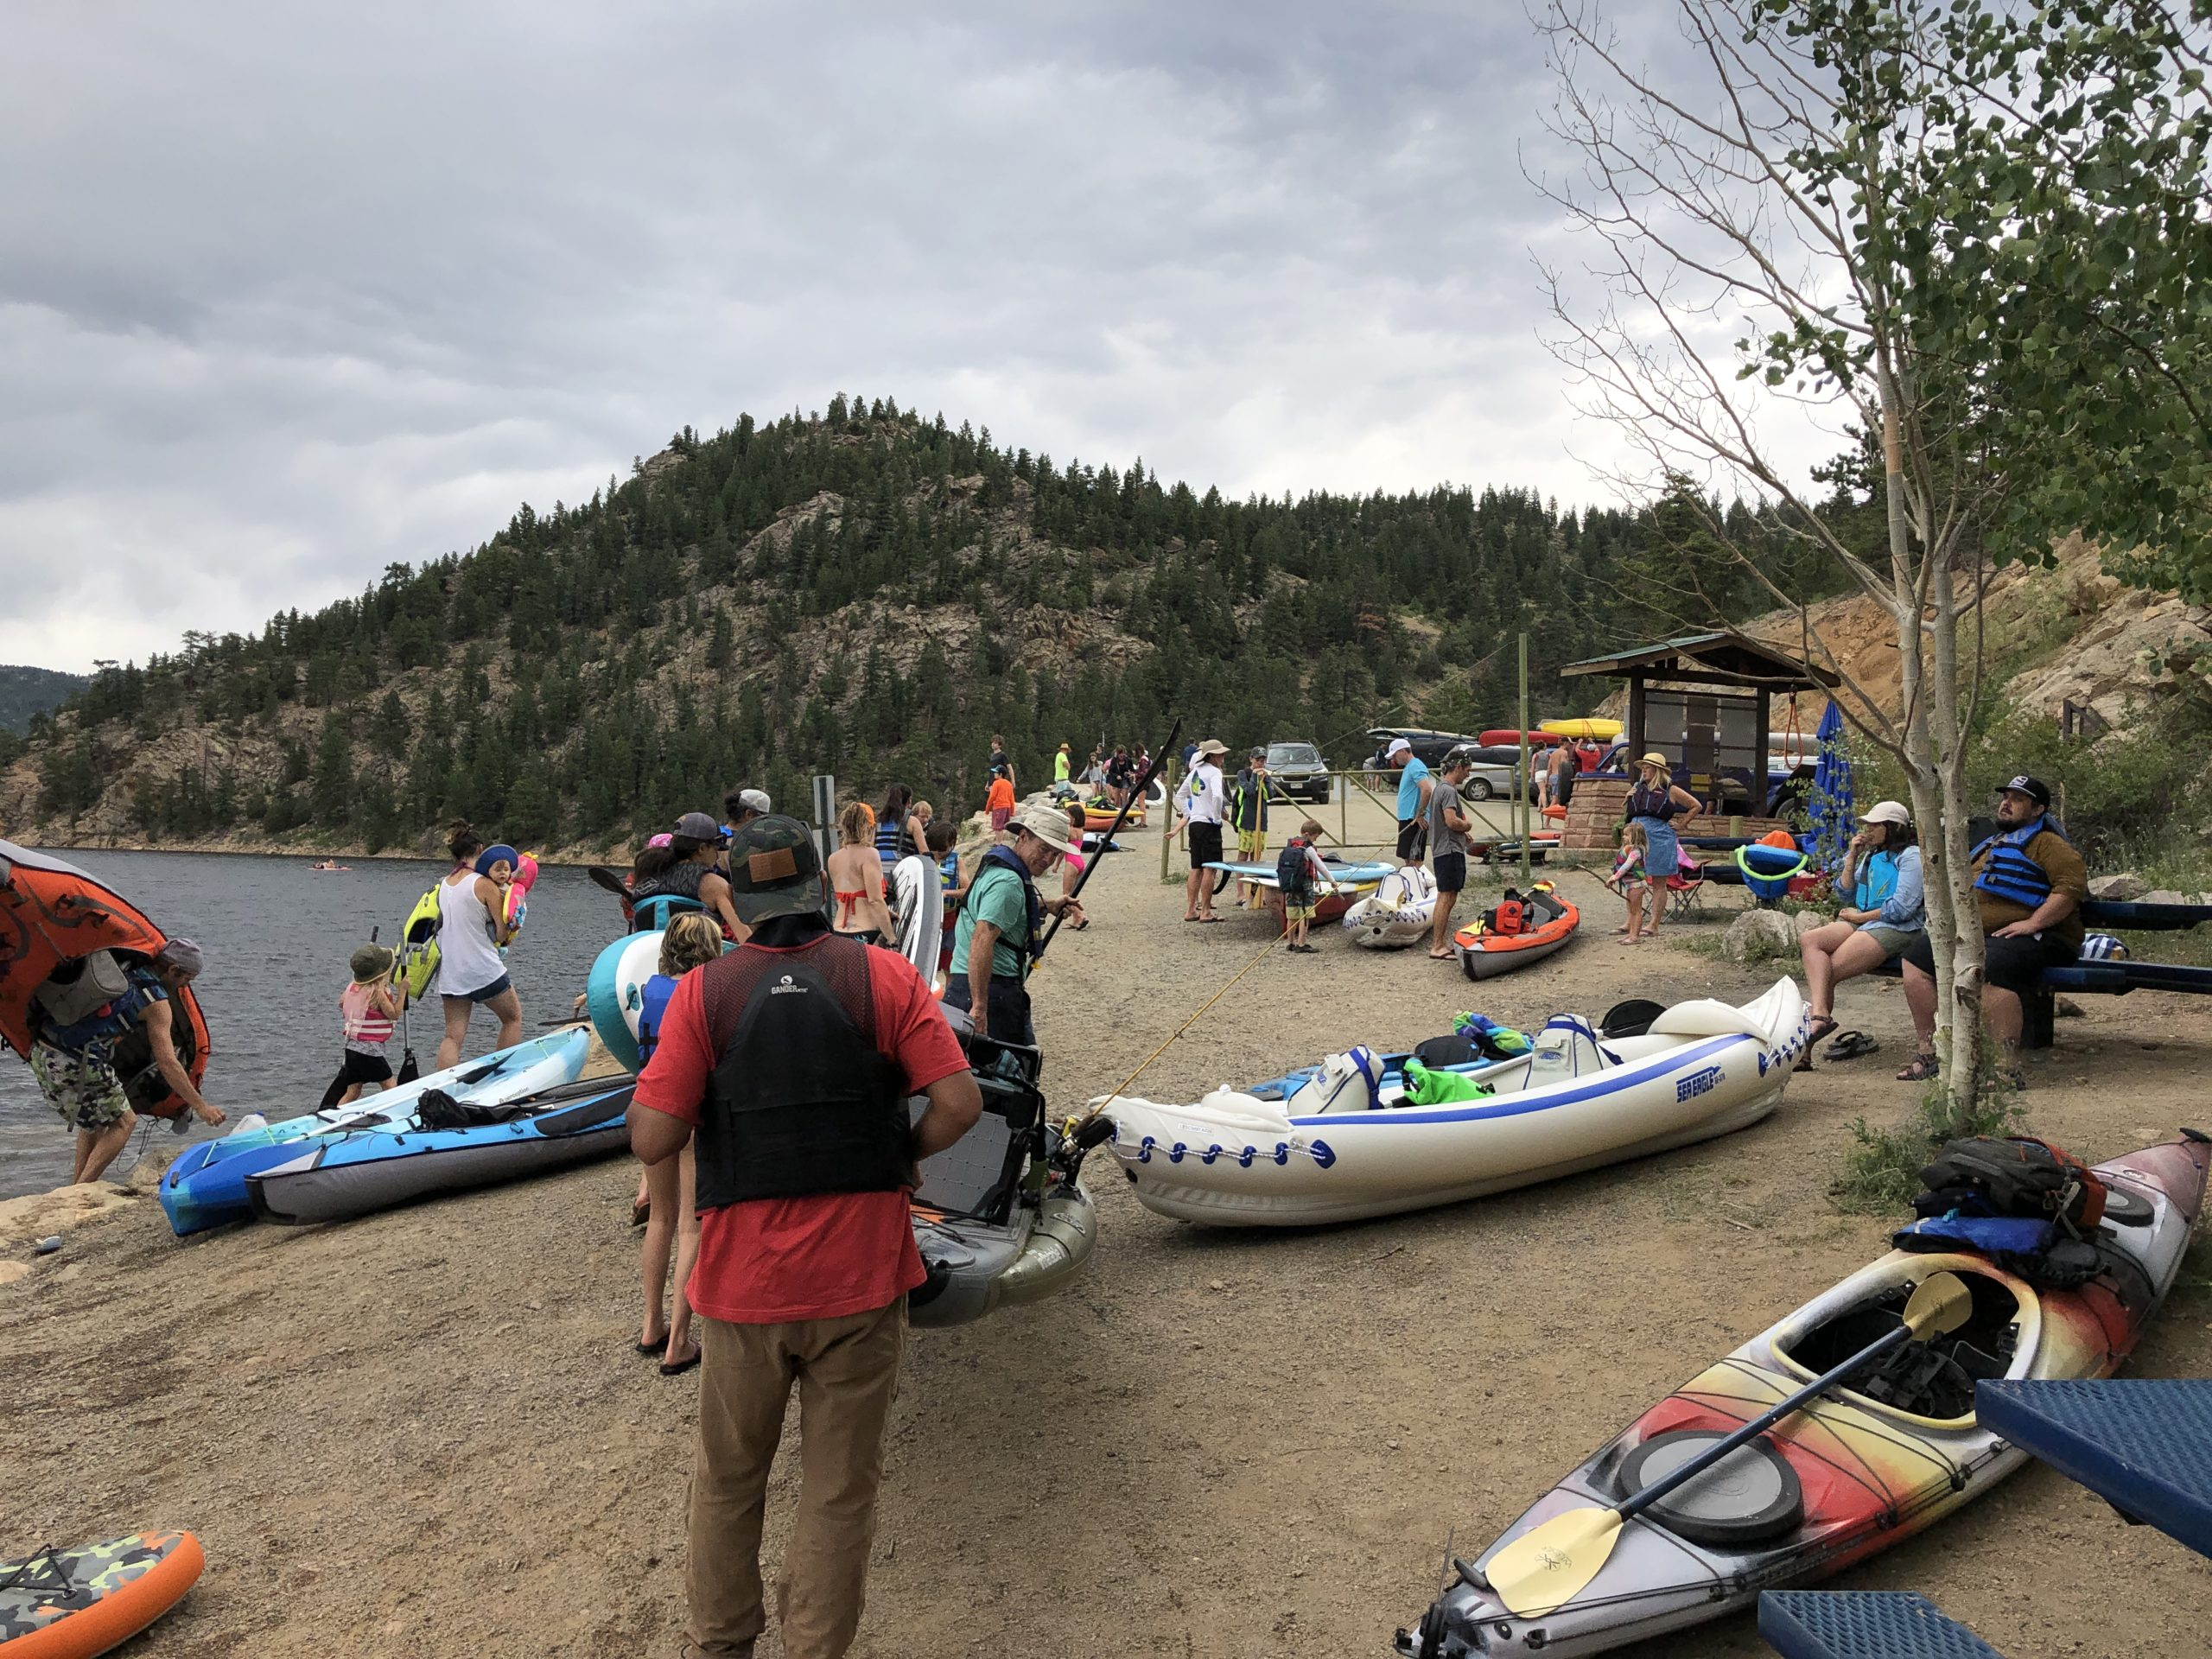 A boat ramp with people crowded around.